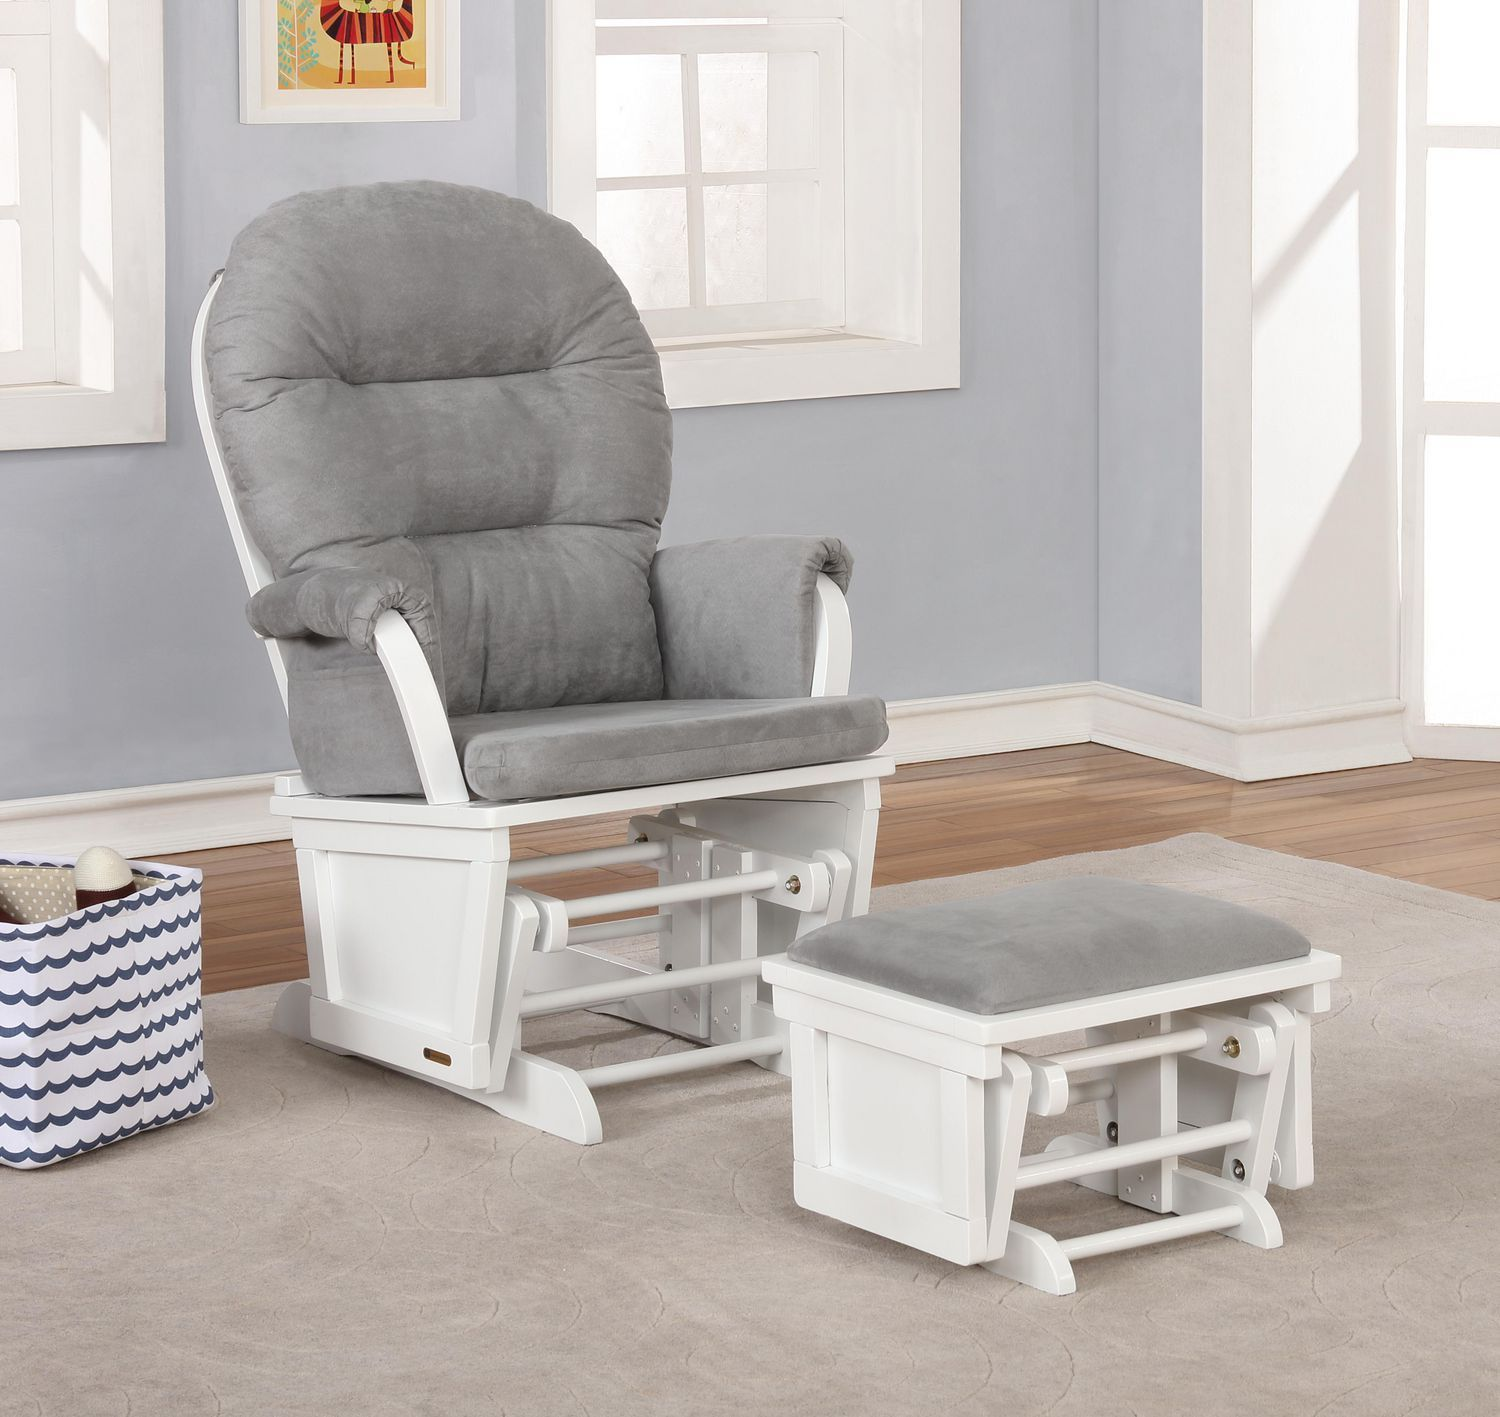 Lennox Glider and ottoman combo White / Grey Walmart